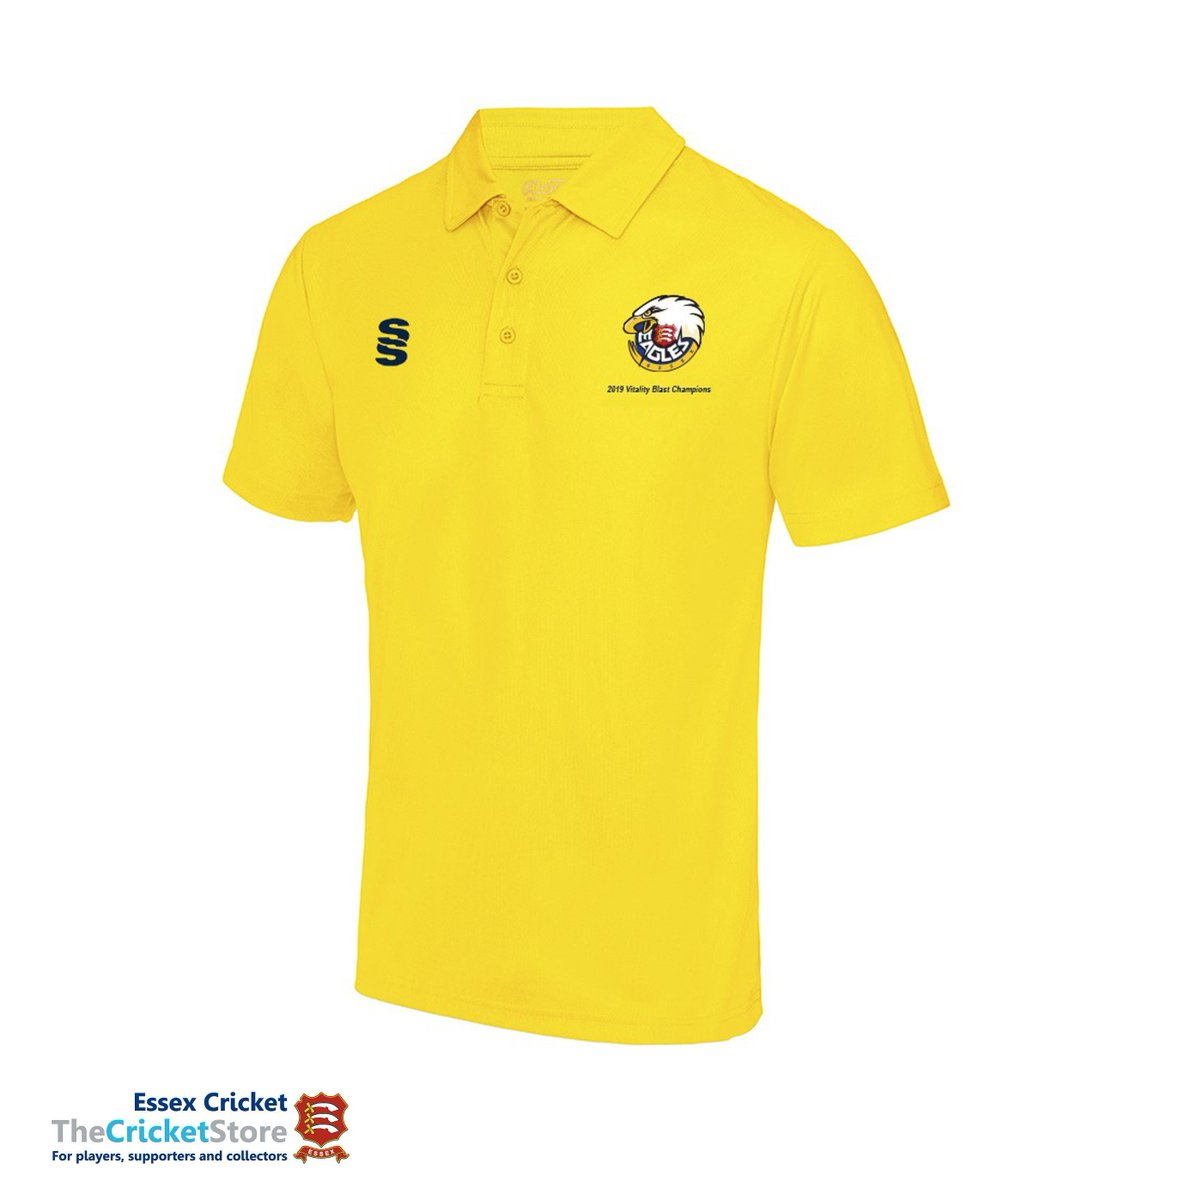 2019 T20 Champions Polos are available now! 🏏🏆 Adult Sizes: £25.00 Junior Sizes: £21.00 essexcricketshop.co.uk/product/2019-t…